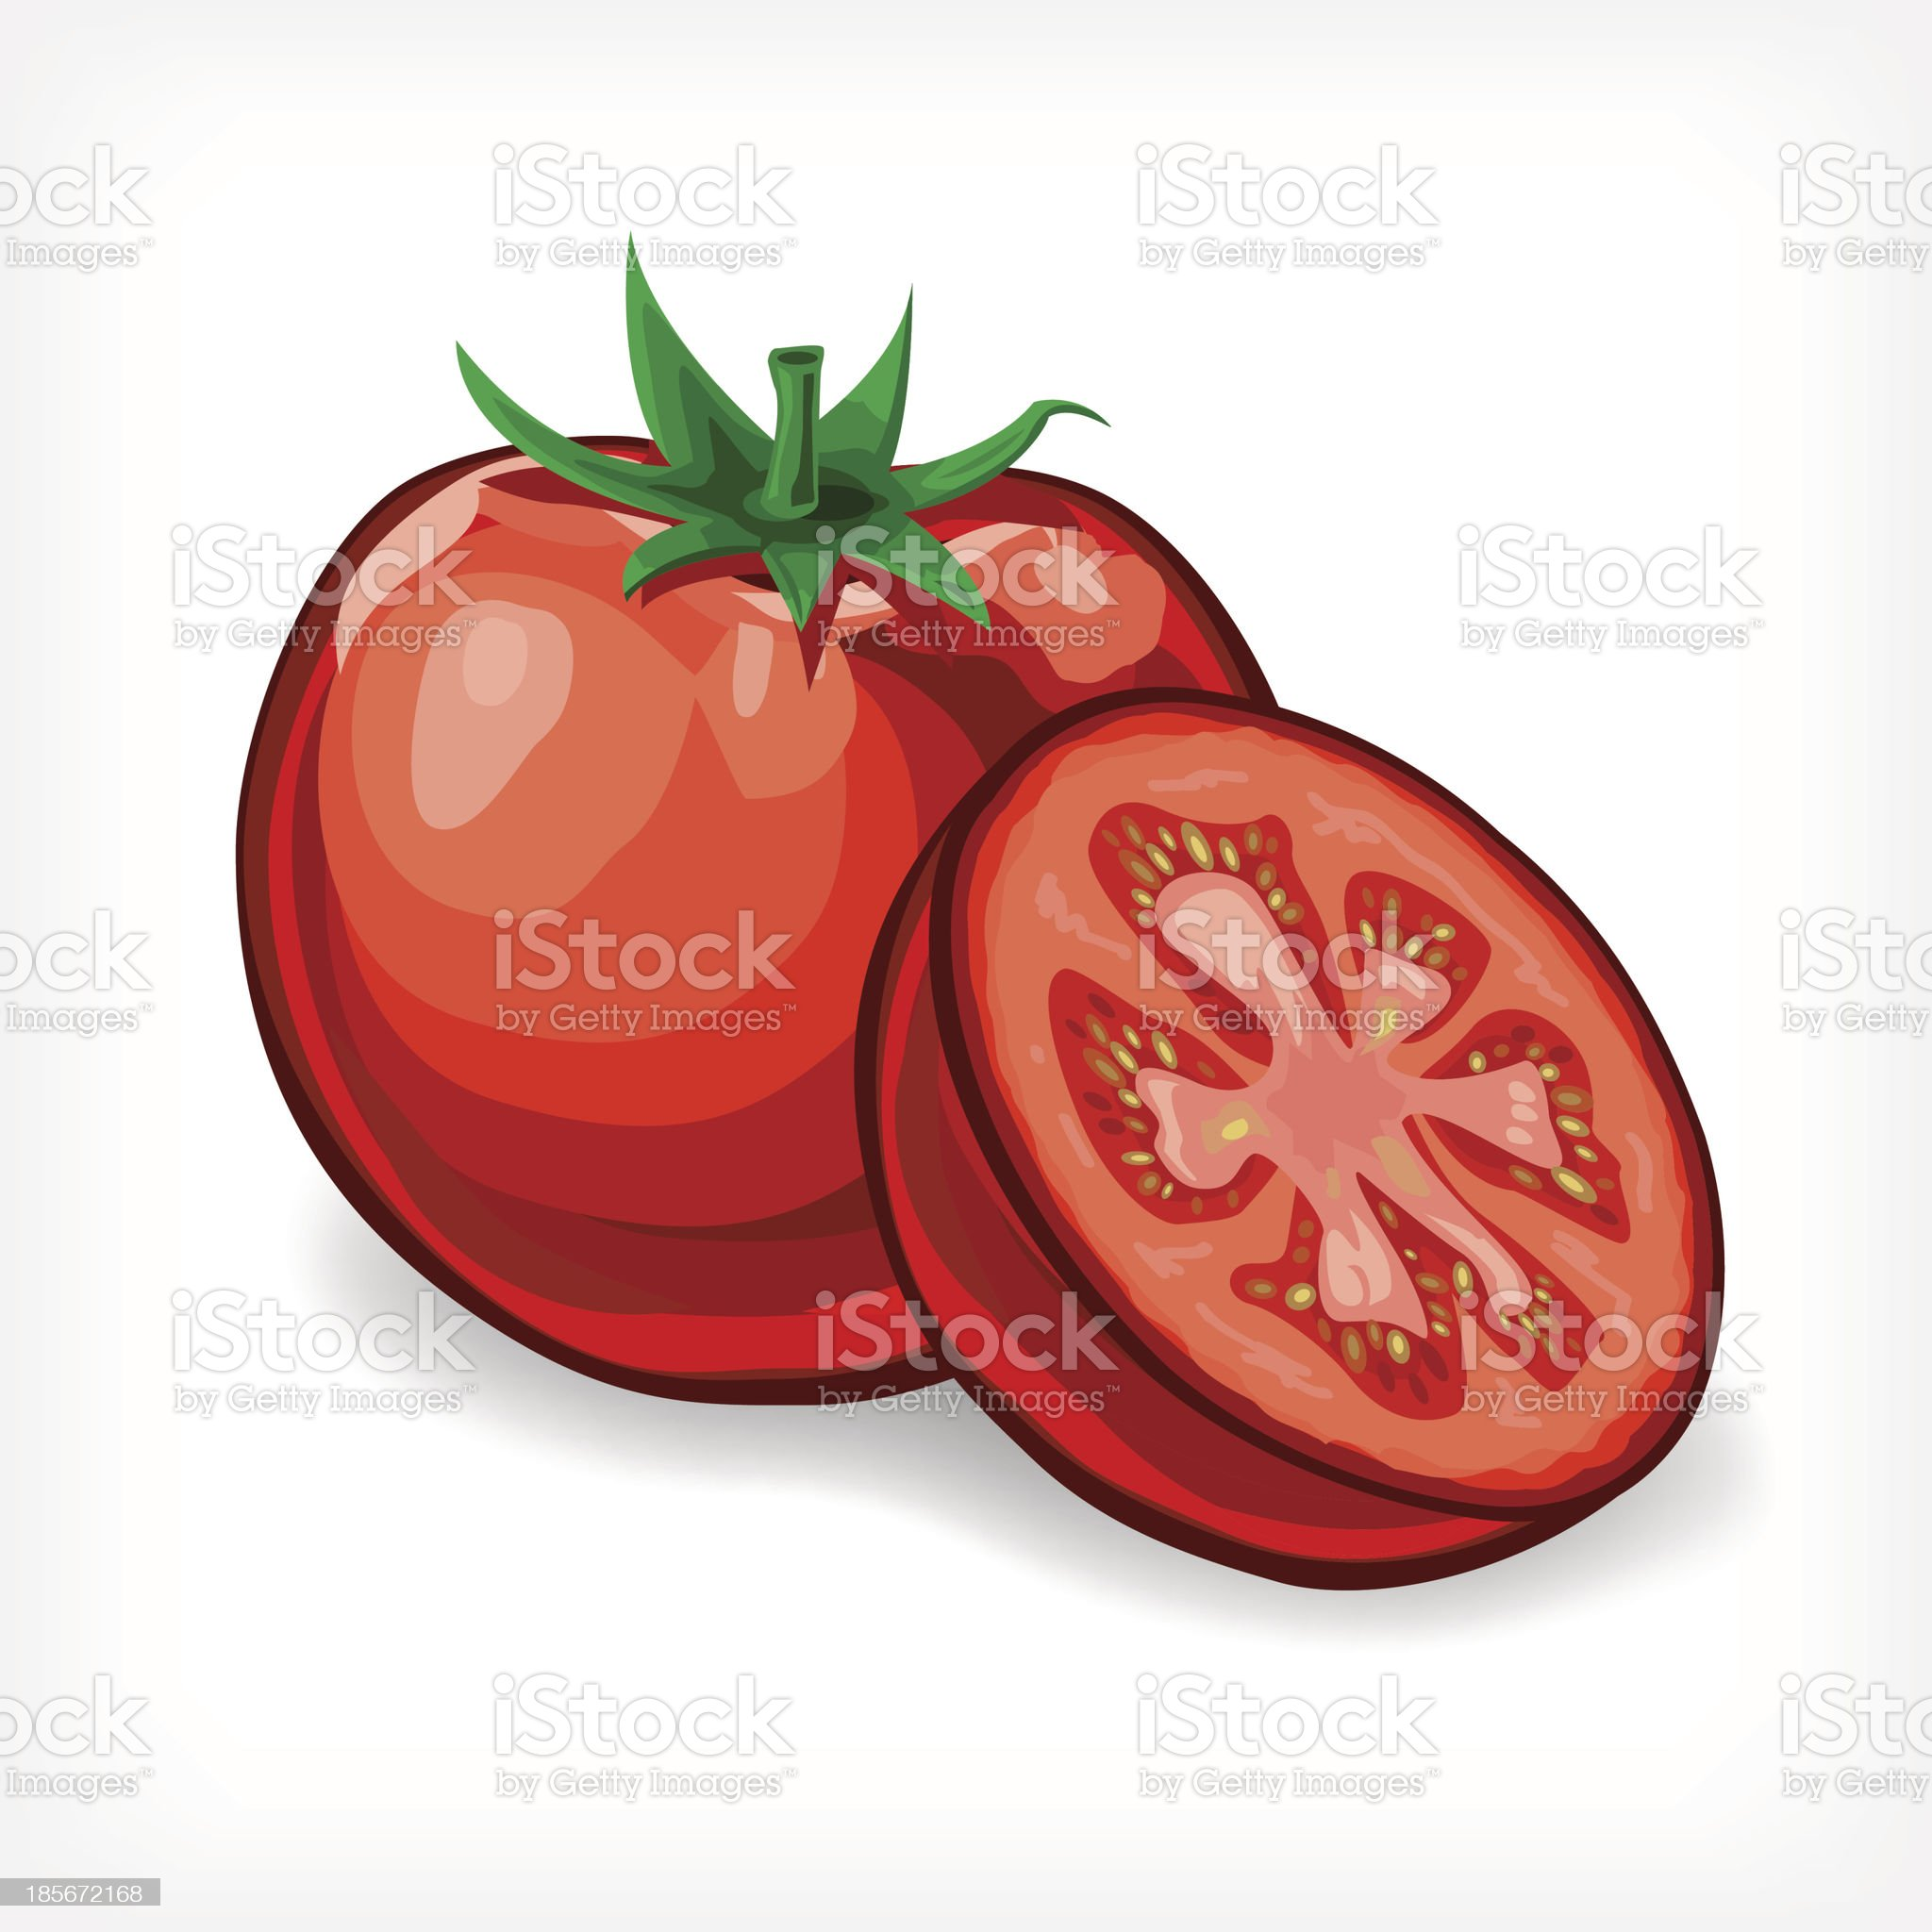 Vector Tomatoes royalty-free stock vector art